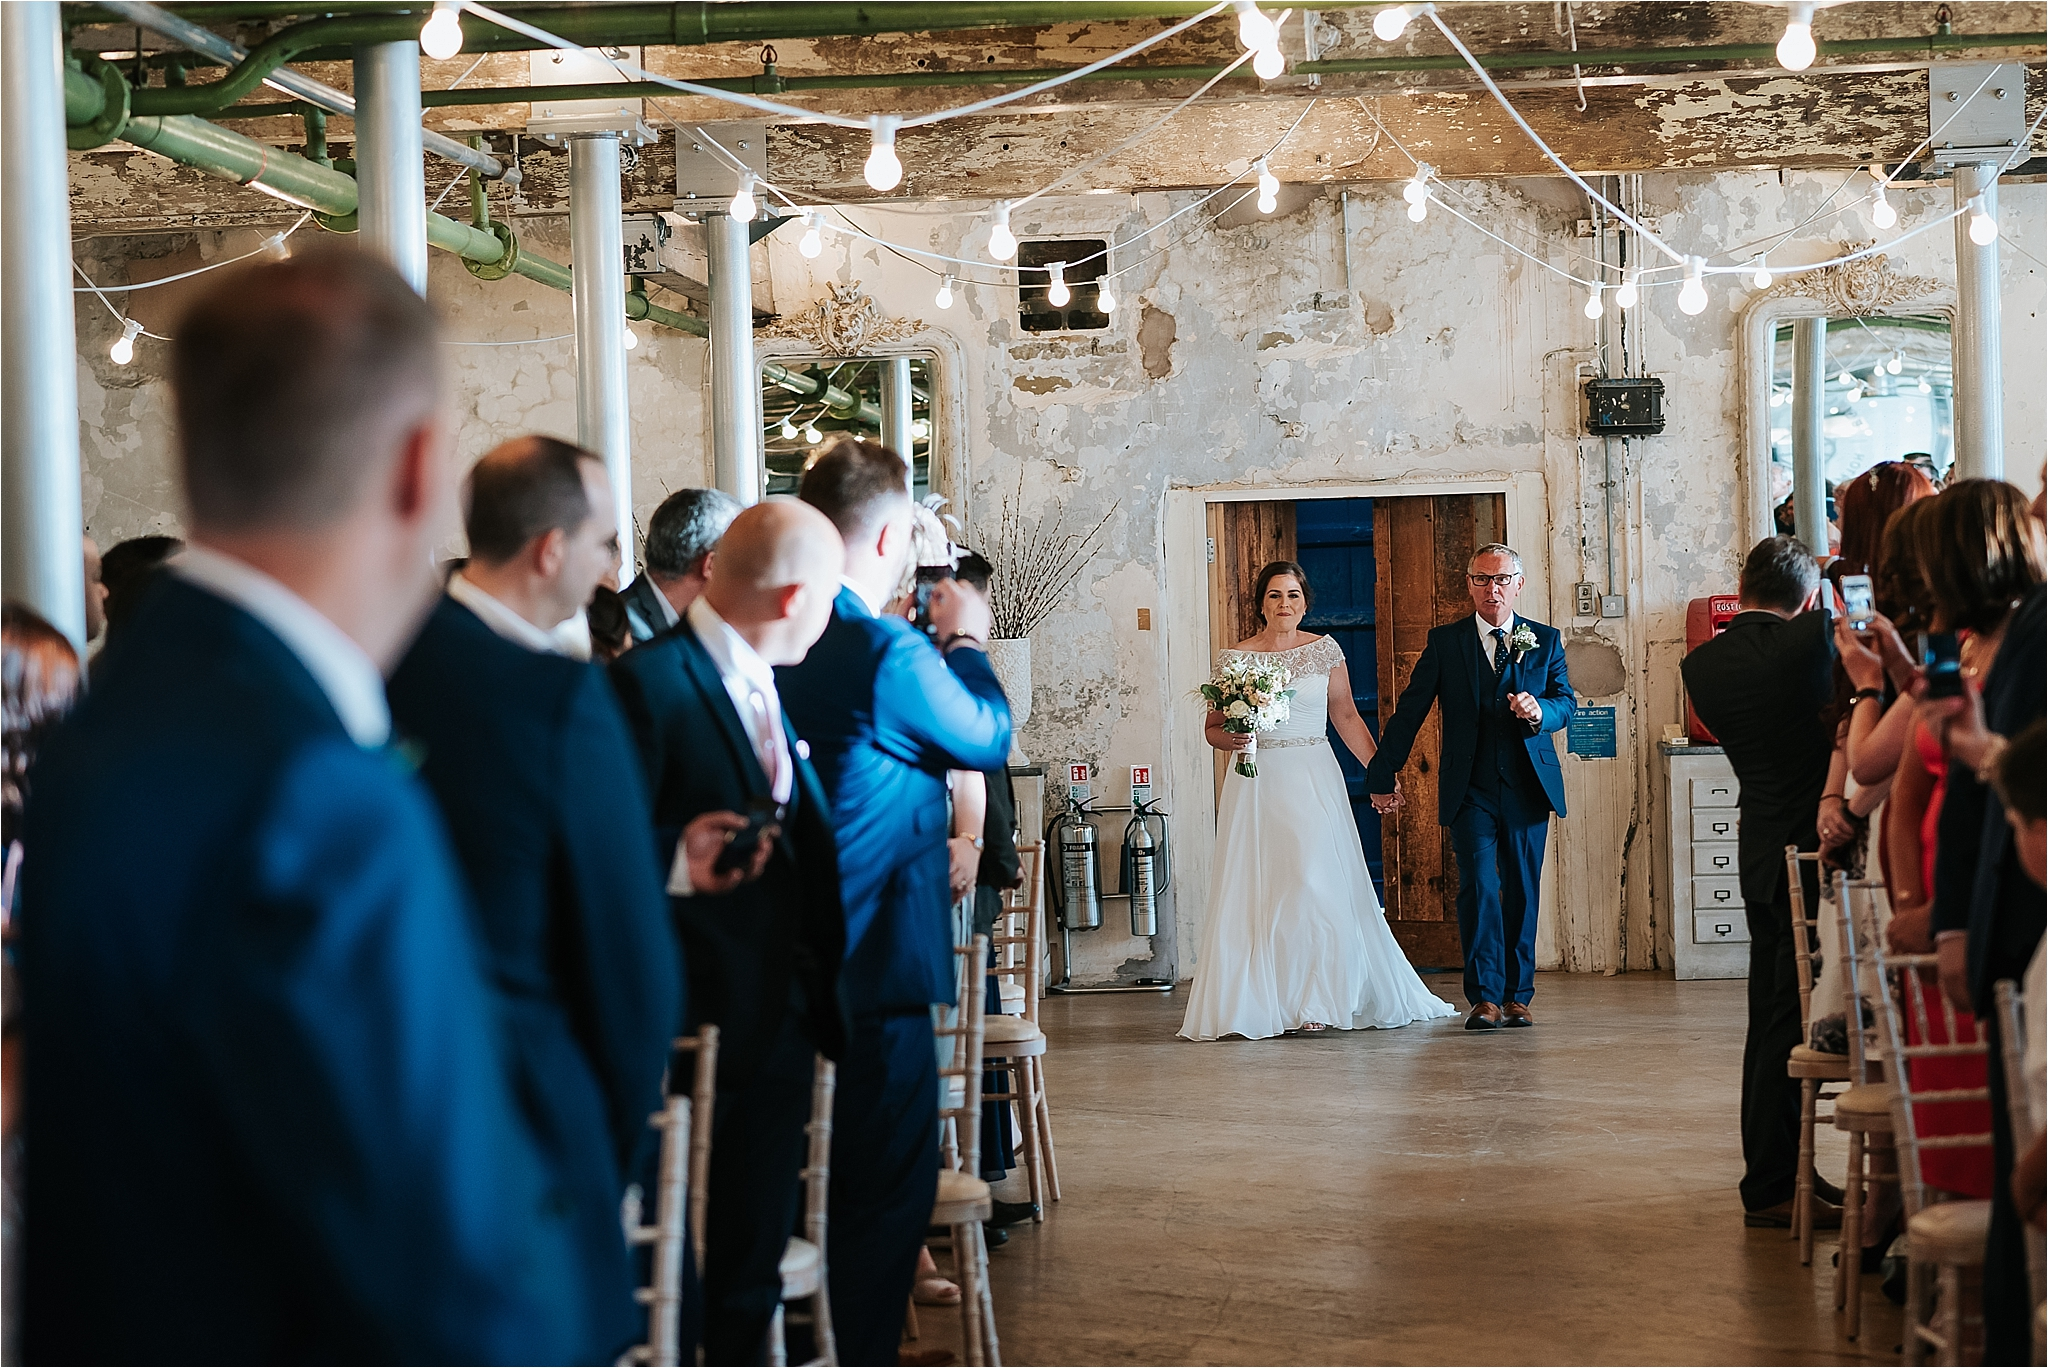 Wedding ceremony room at holmes mill, clitheroe